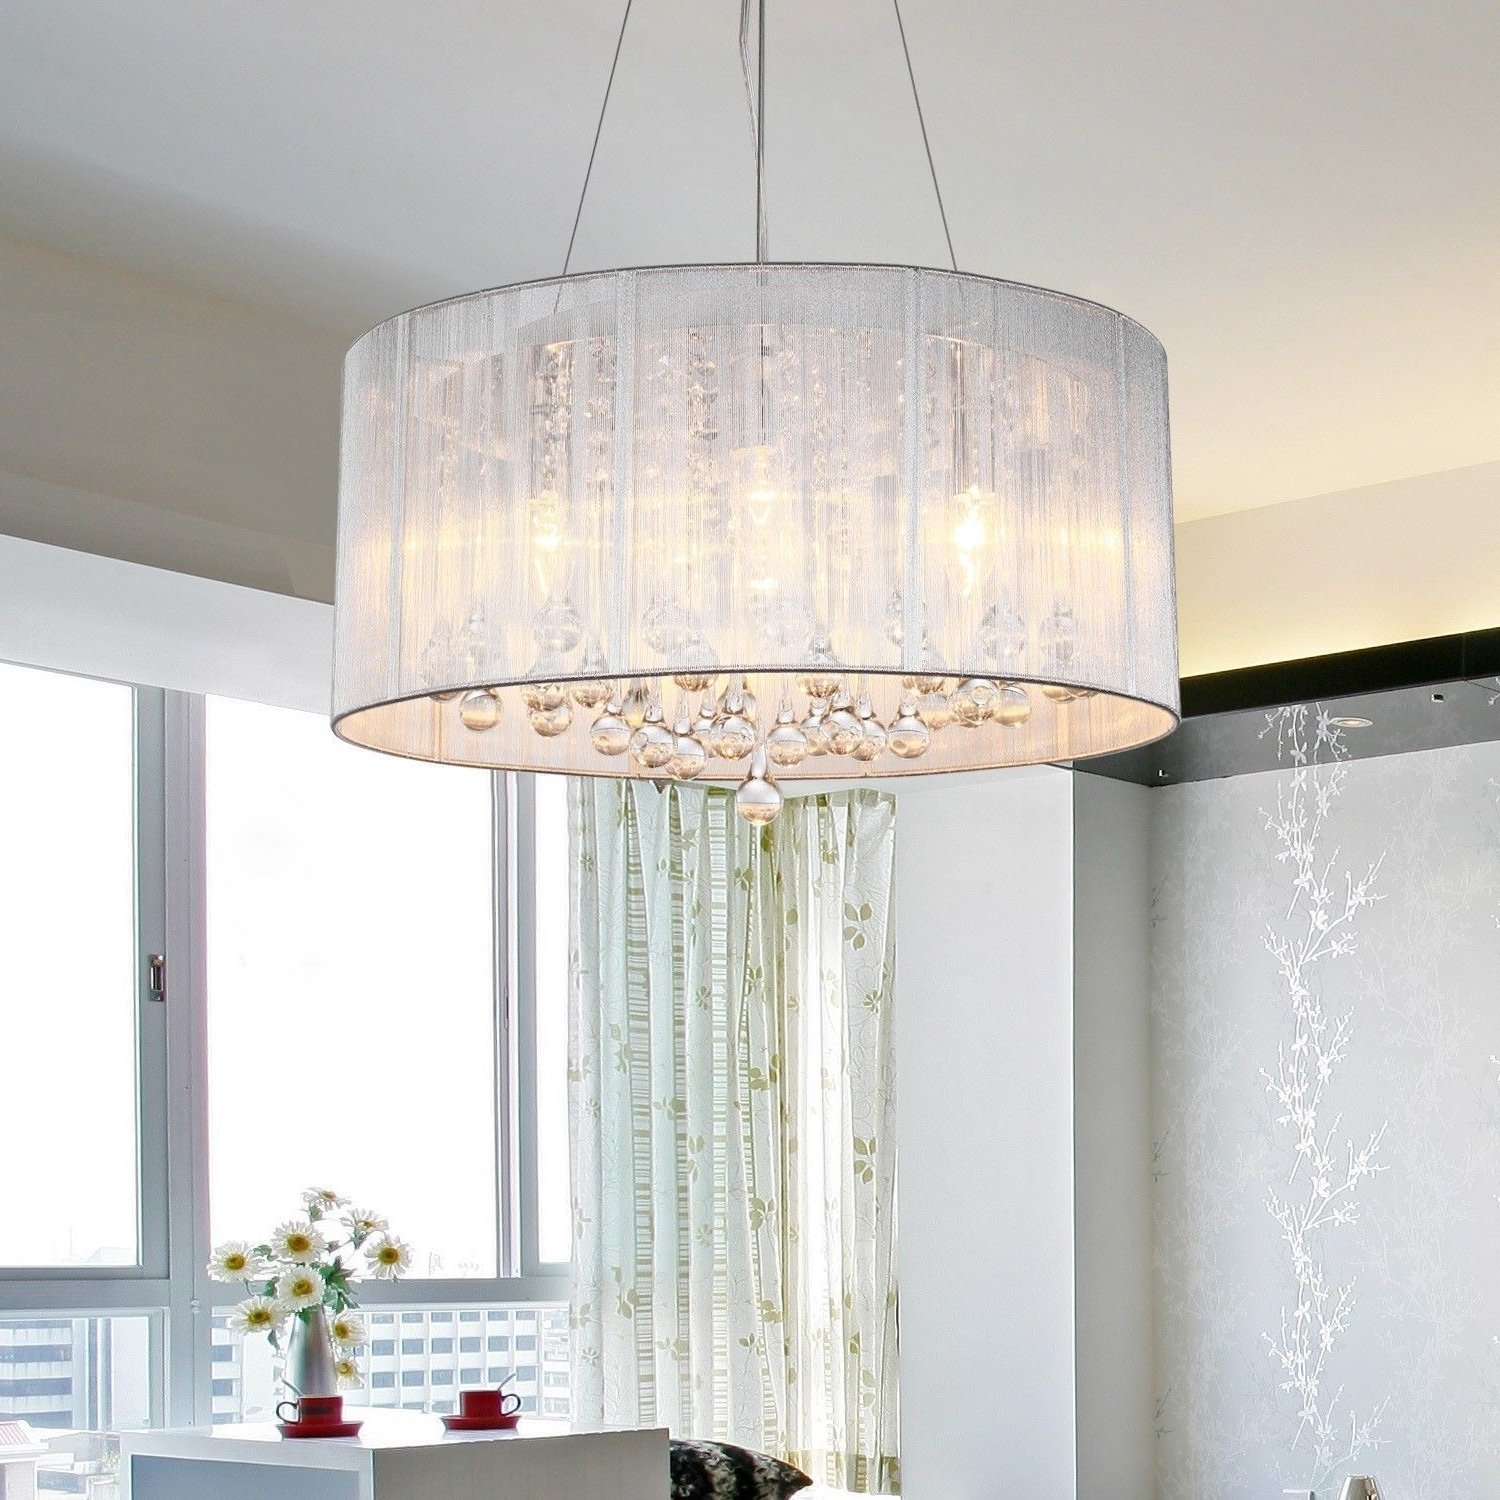 Most Popular Awesome Lamp Shades For Chandeliers Chandelier From The Elegant With Regard To Chandelier Lamp Shades (View 9 of 15)